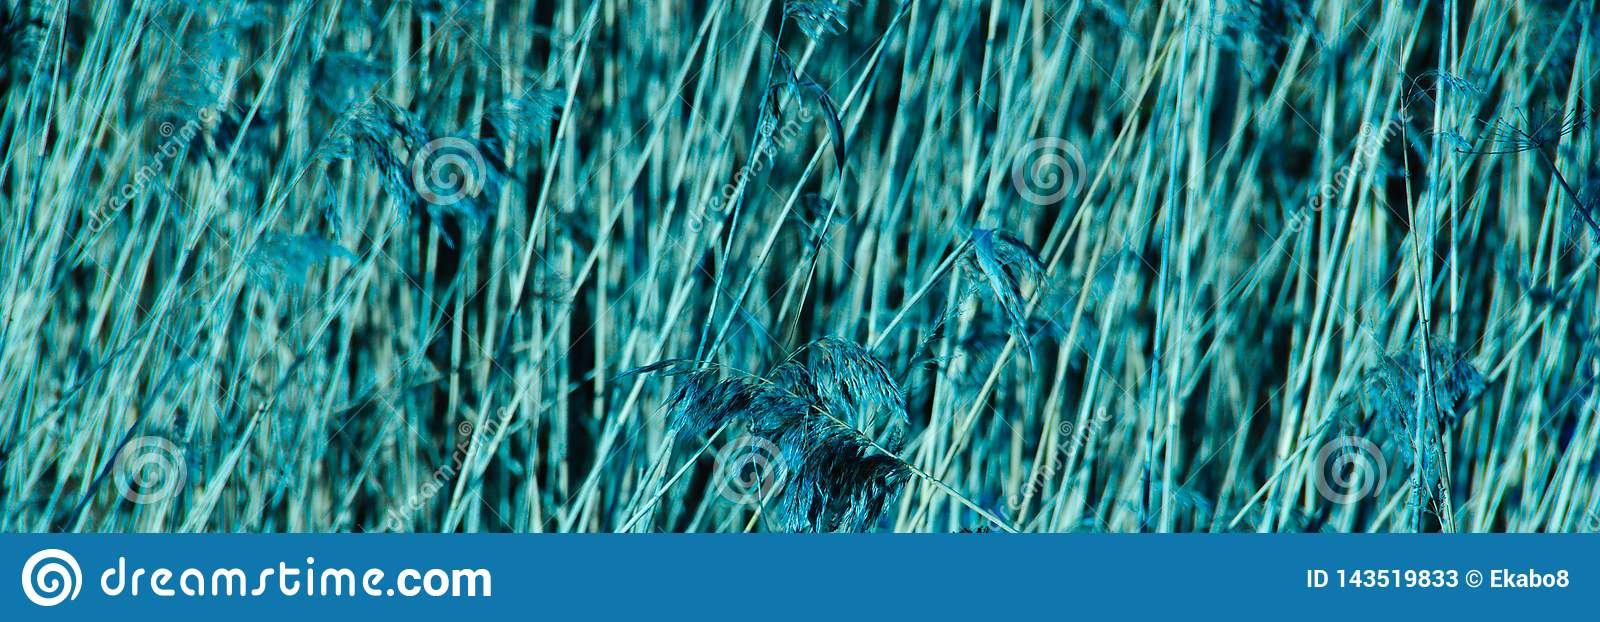 Blue abstract background. cropped dry branches textured natural background.